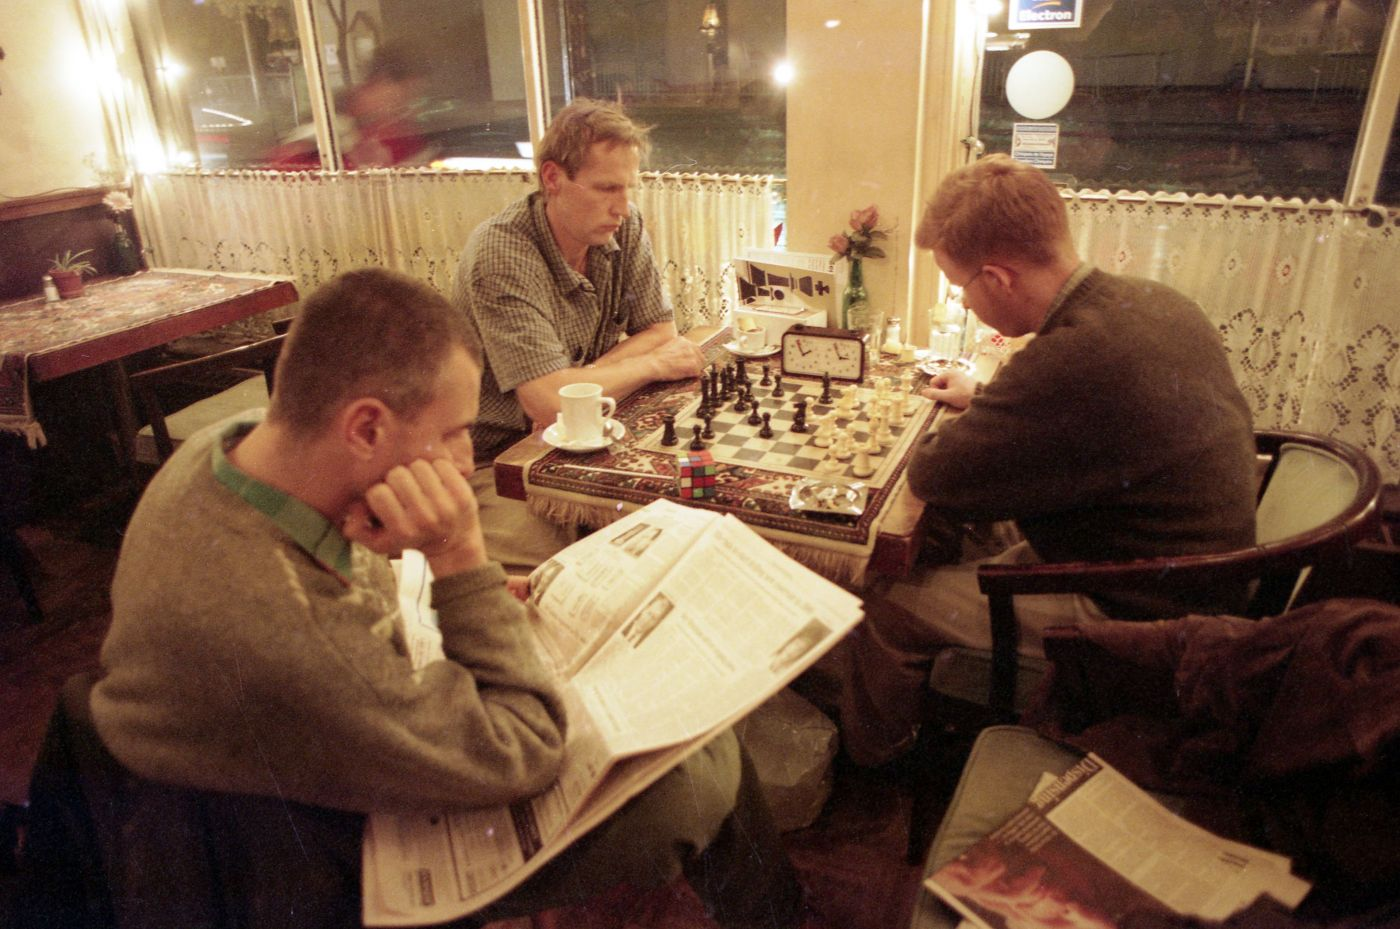 Colour photograph of three middle-aged men sitting in a cafe in the evening. Two of the men are playing chess. The third man is reading a newspaper at their side.